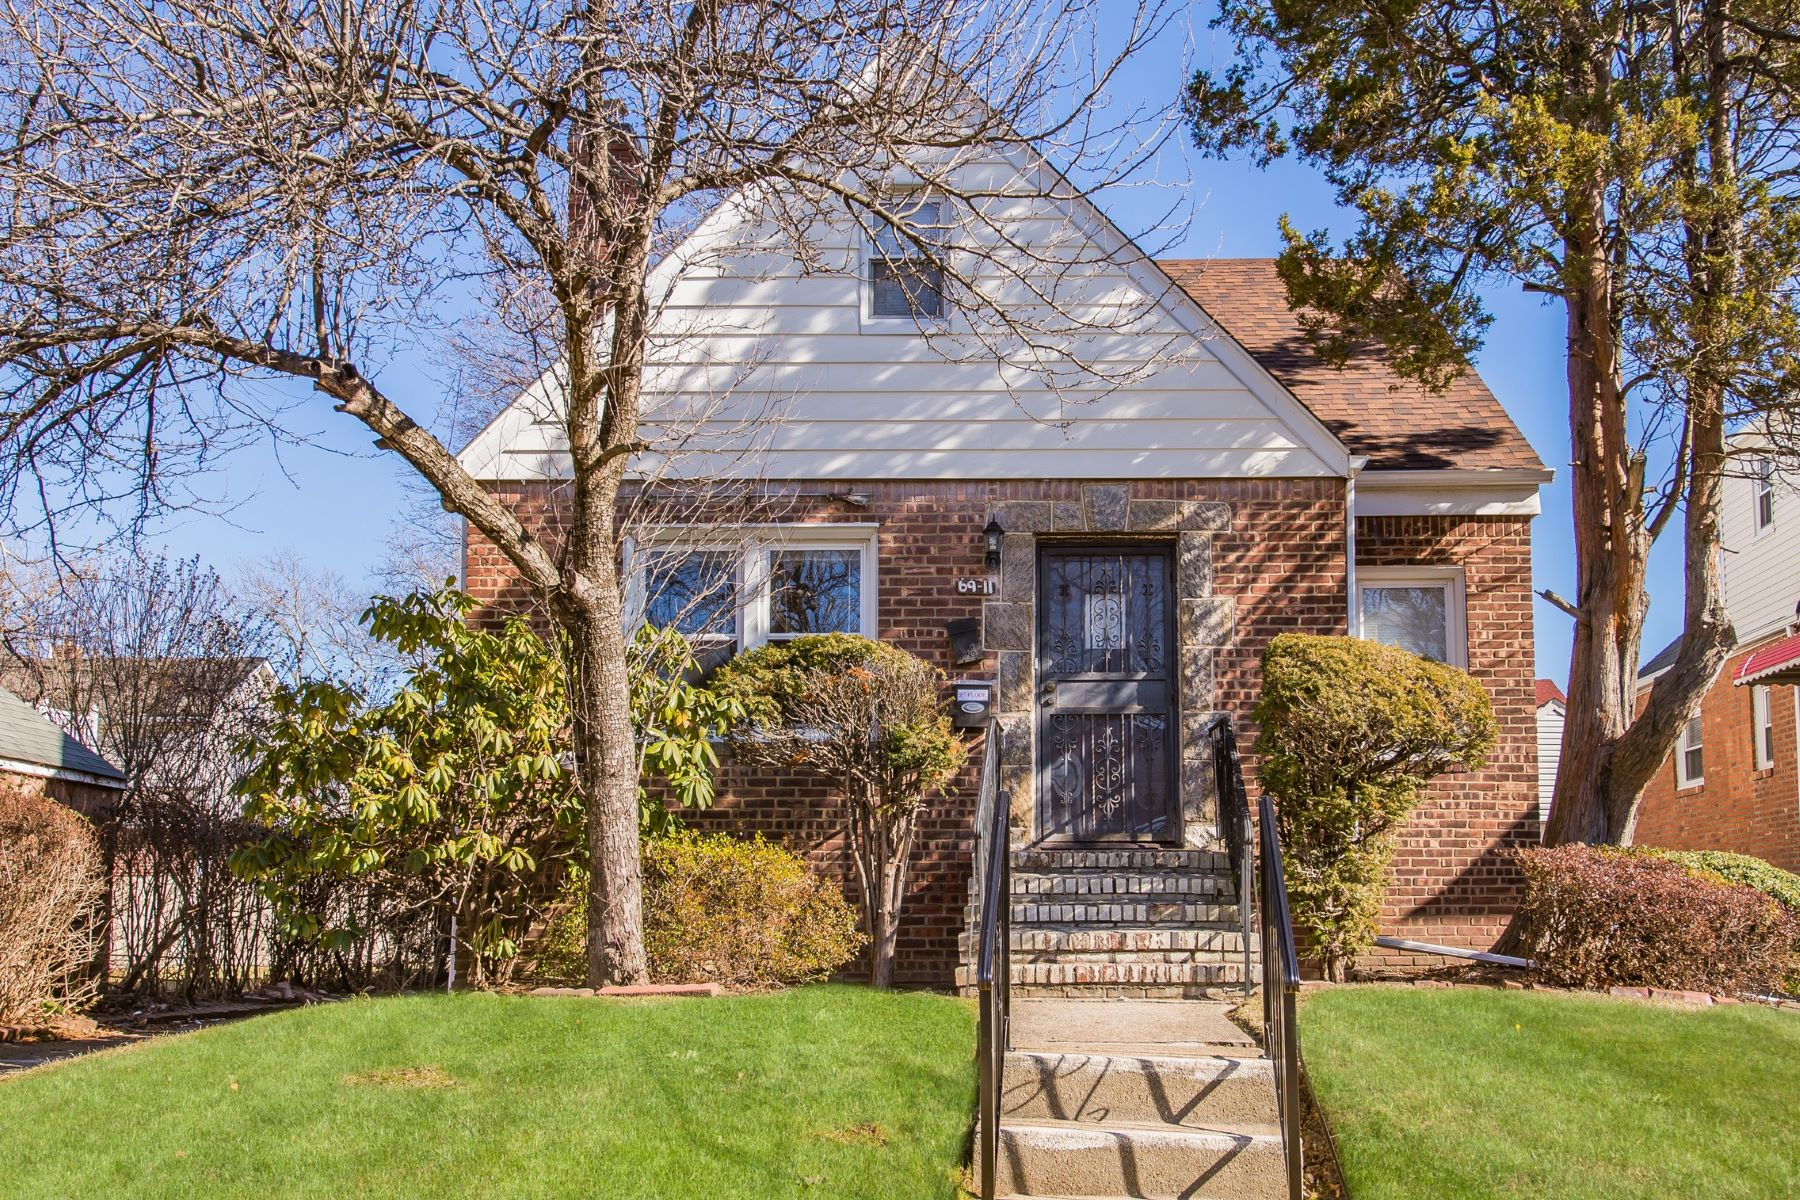 Multi-Family Home for Sale at 69-11 178th St , Fresh Meadows, NY 11365 Fresh Meadows, New York, 11365 United States